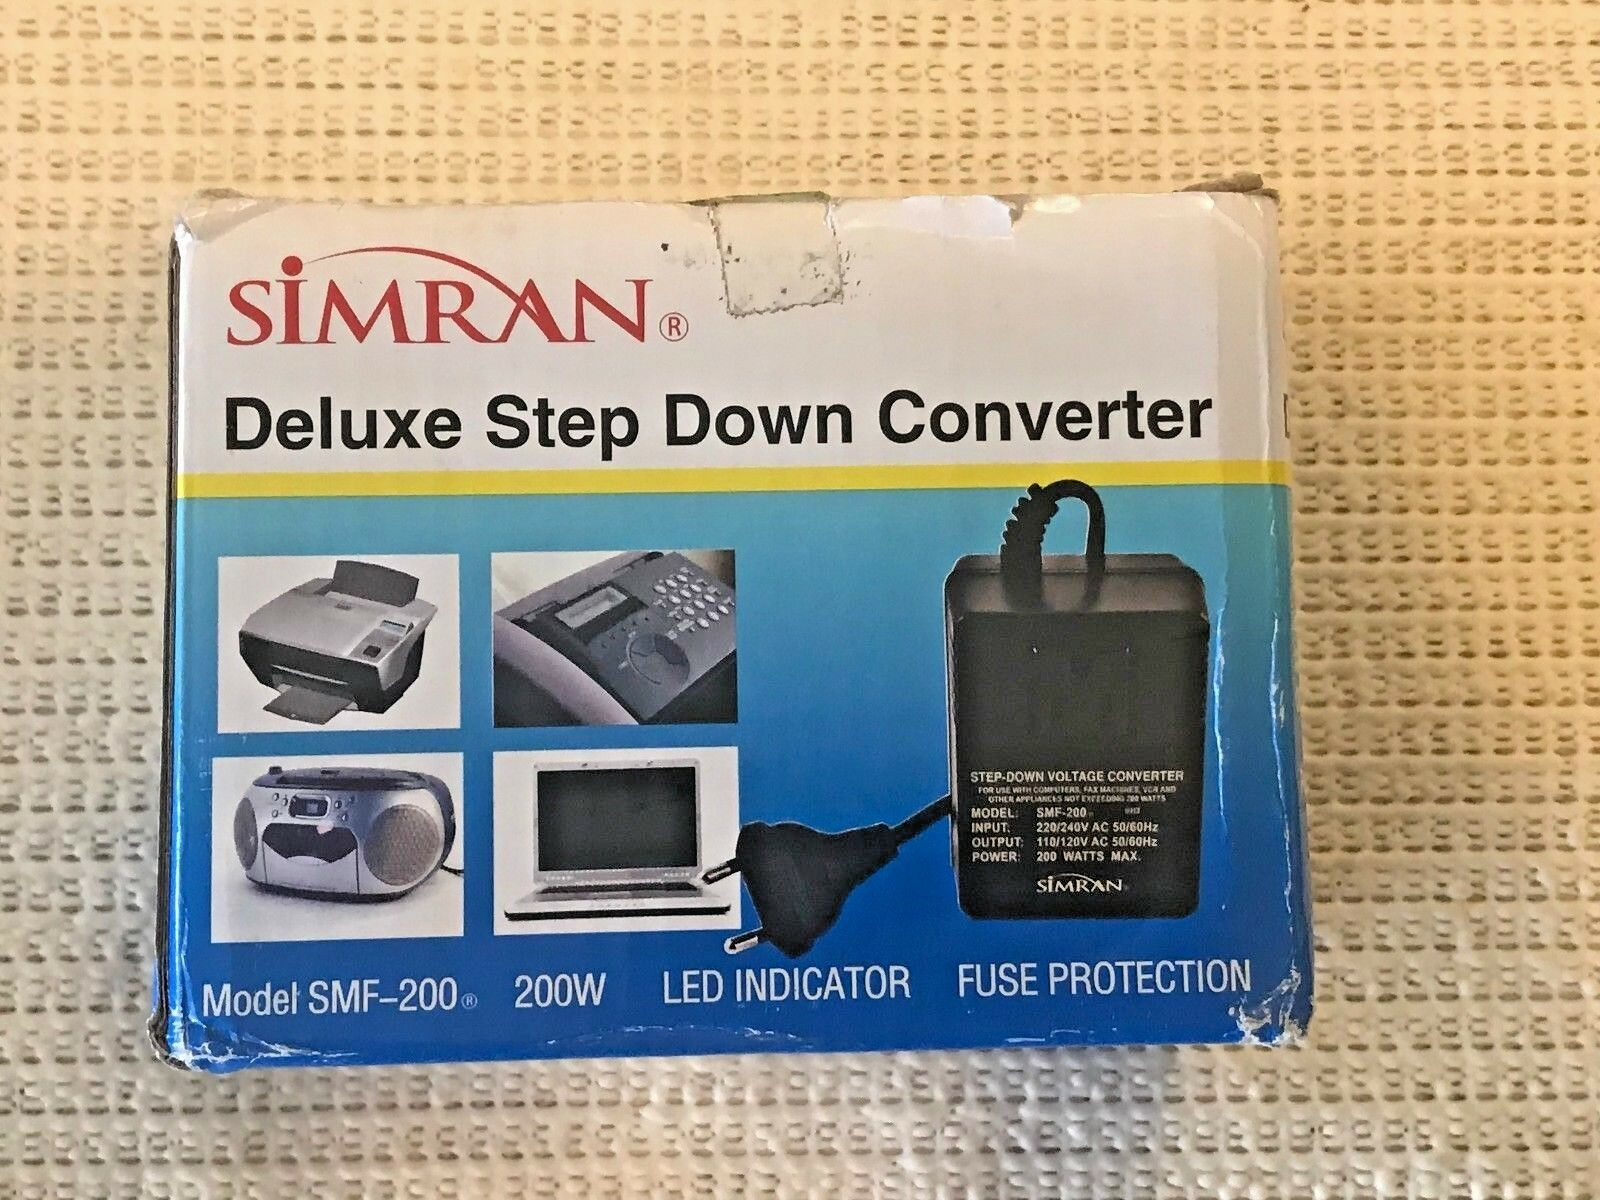 Simran SMF-200 Deluxe 200 Watts Step Down Voltage Converter